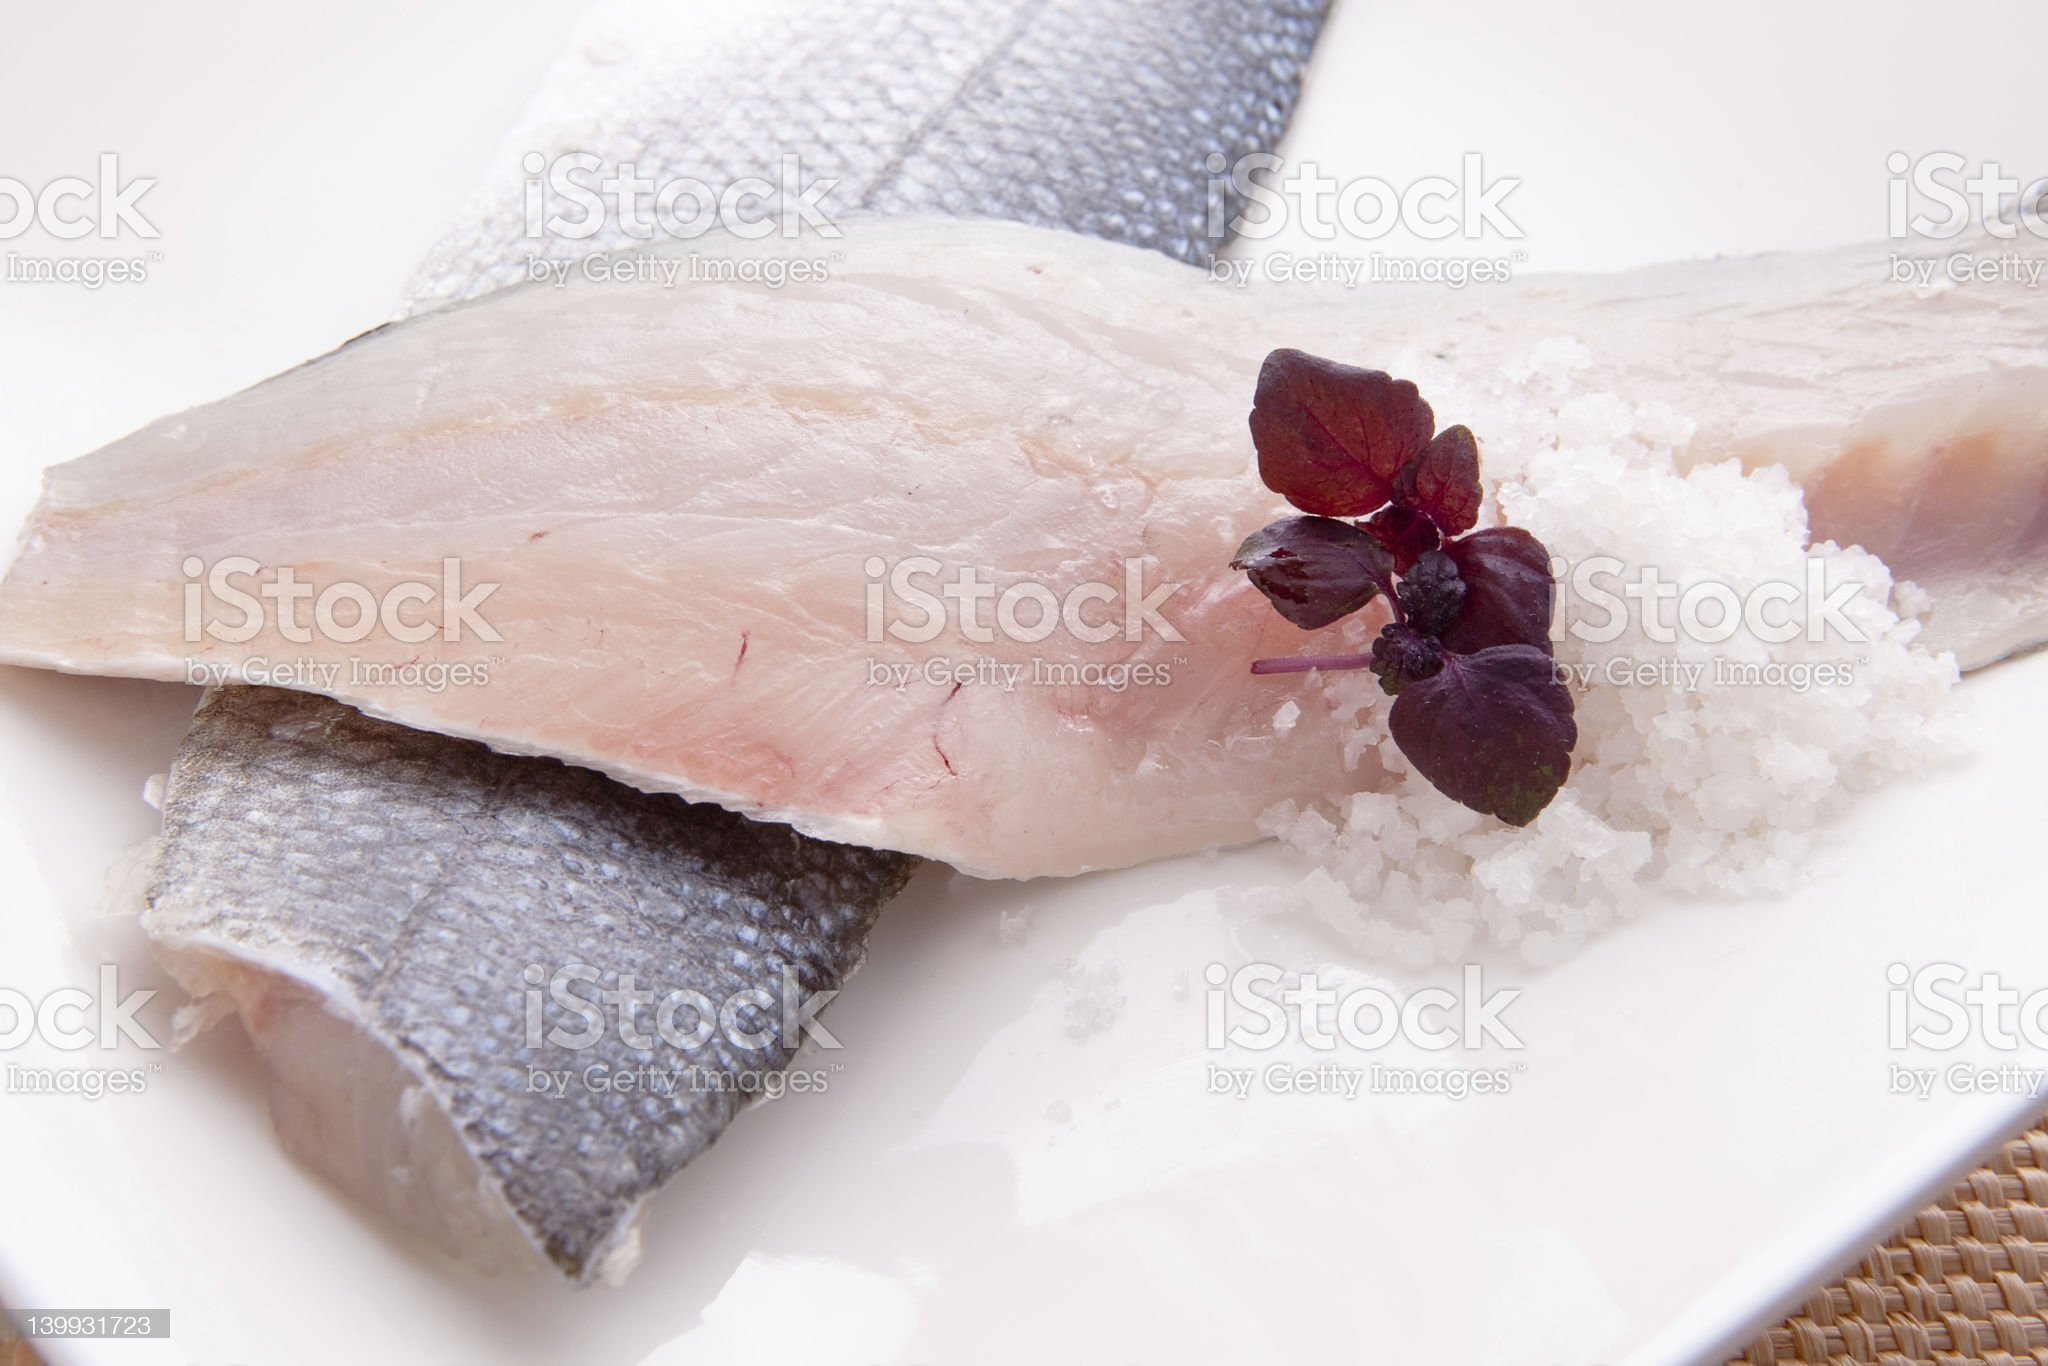 Raw fish fillets on white plate with rice and garnish royalty-free stock photo